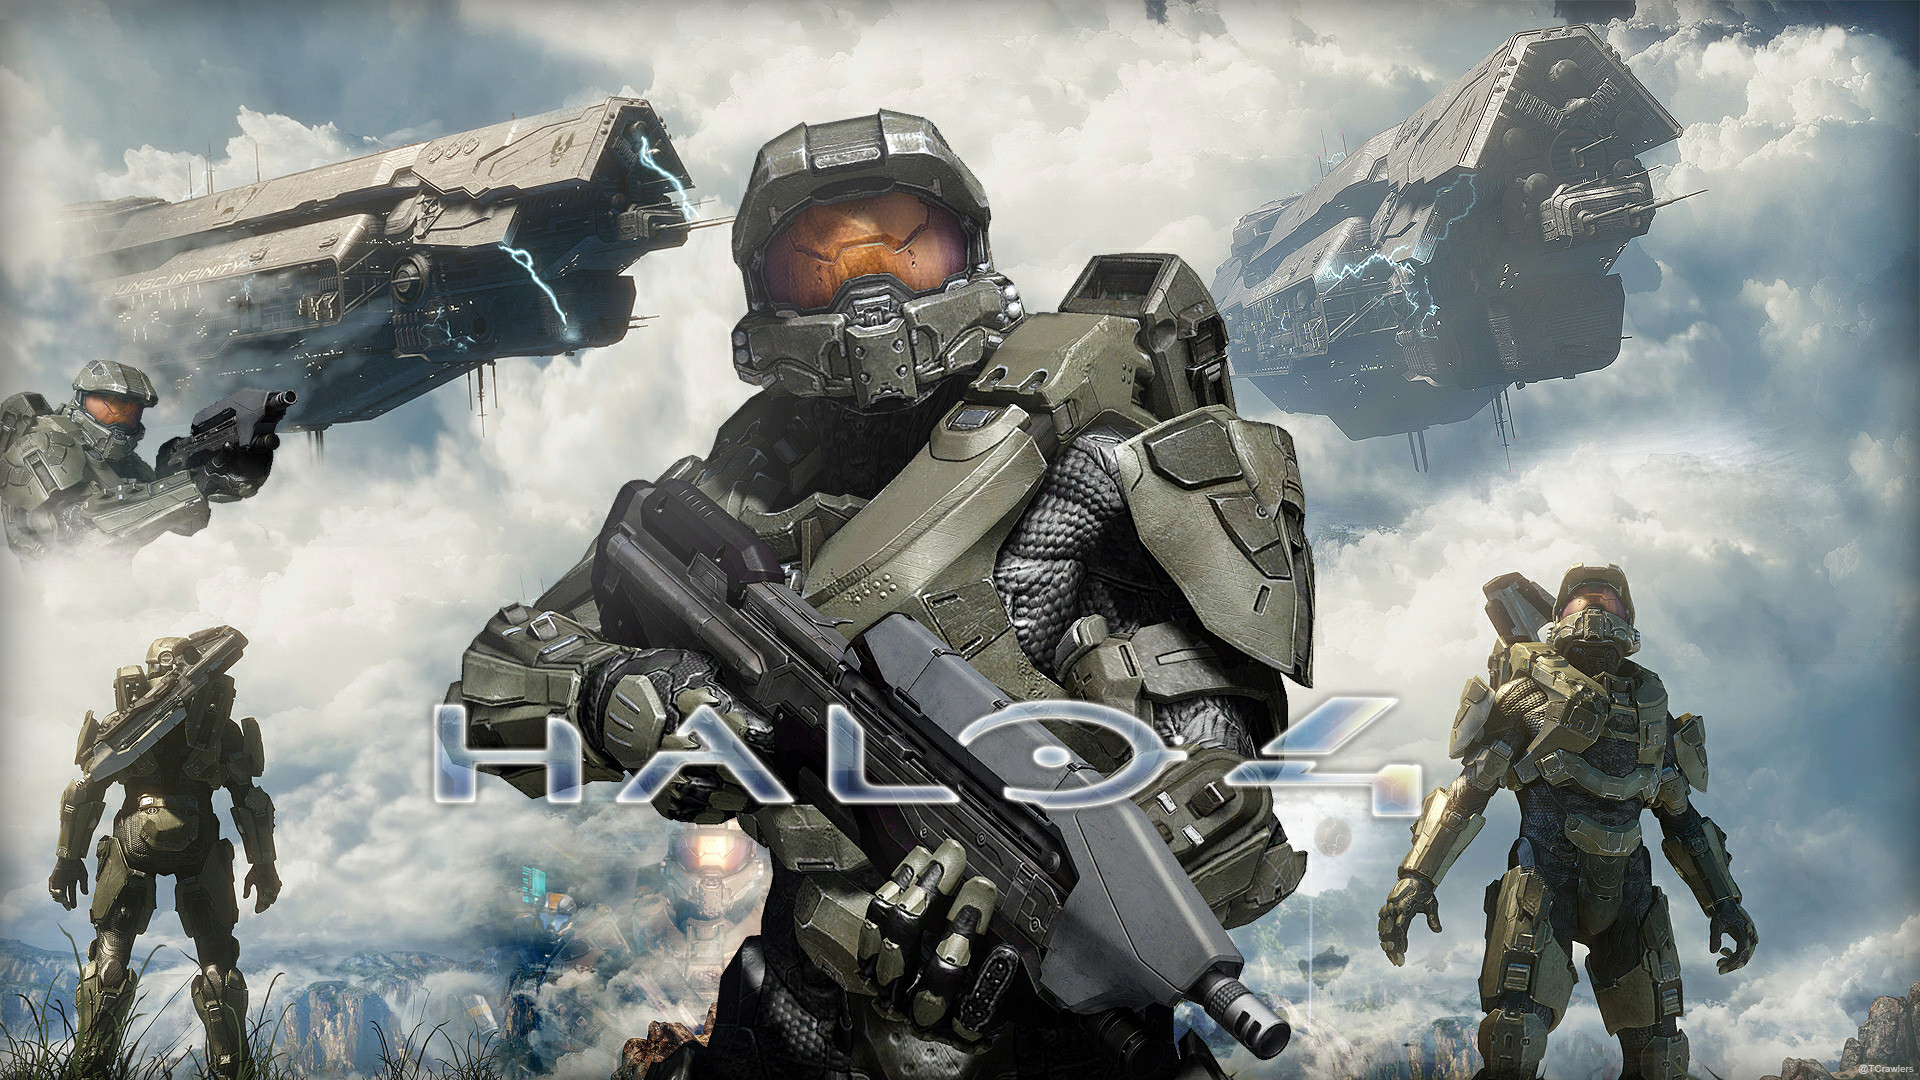 Awesome Halo wallpaper   Halo wallpapers